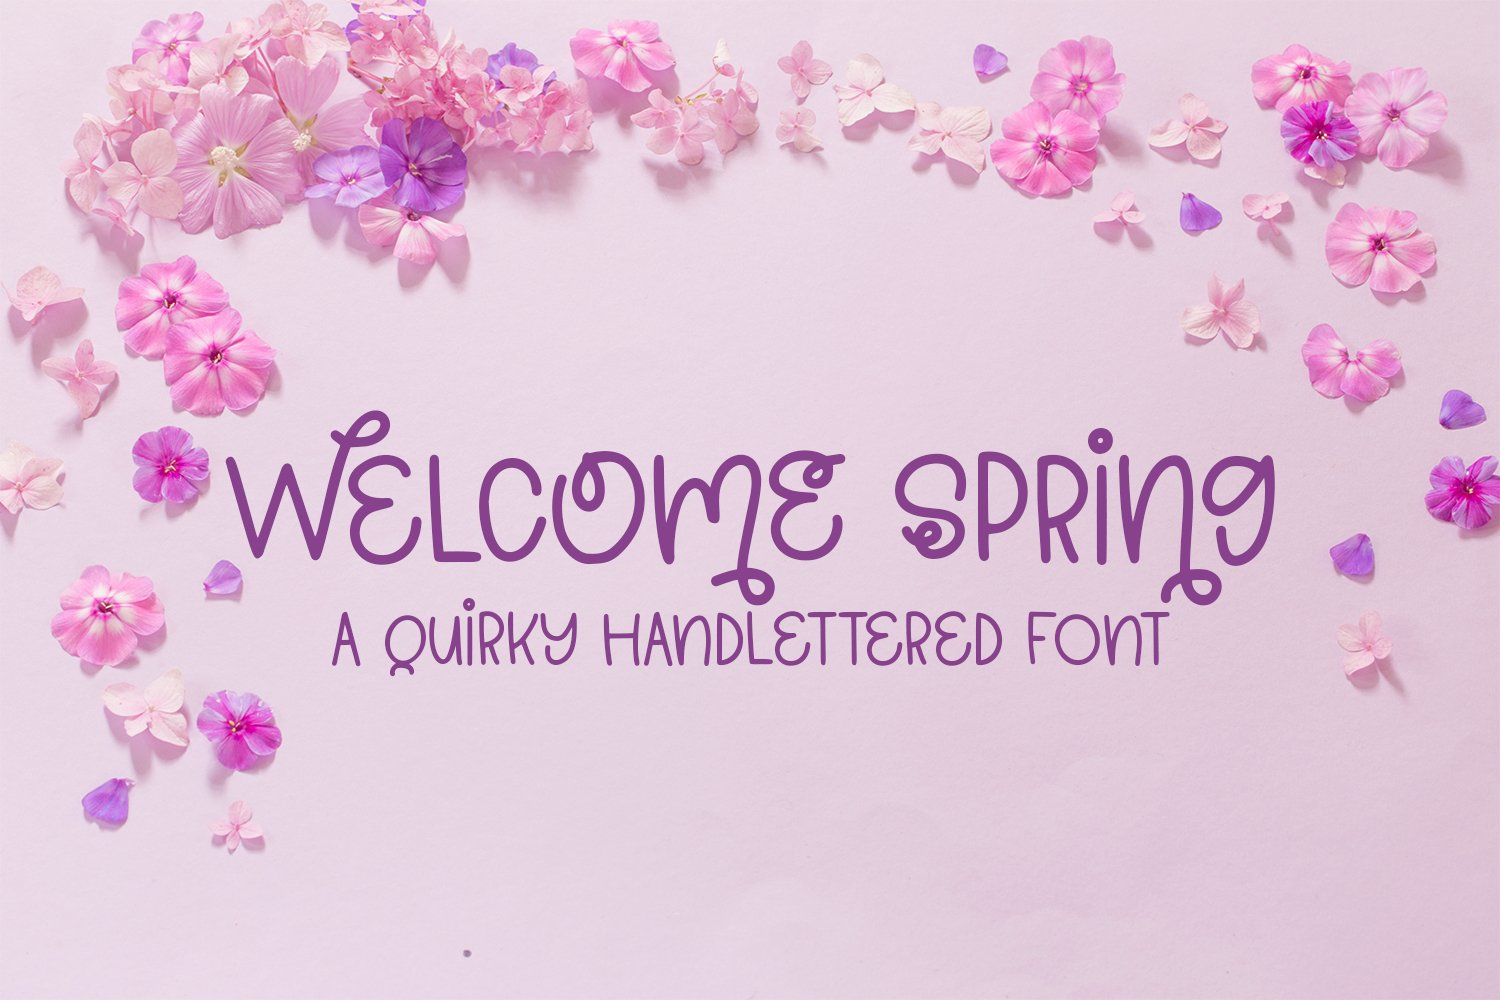 Welcome Spring - A Quirky Hand-Lettered Font example image 1